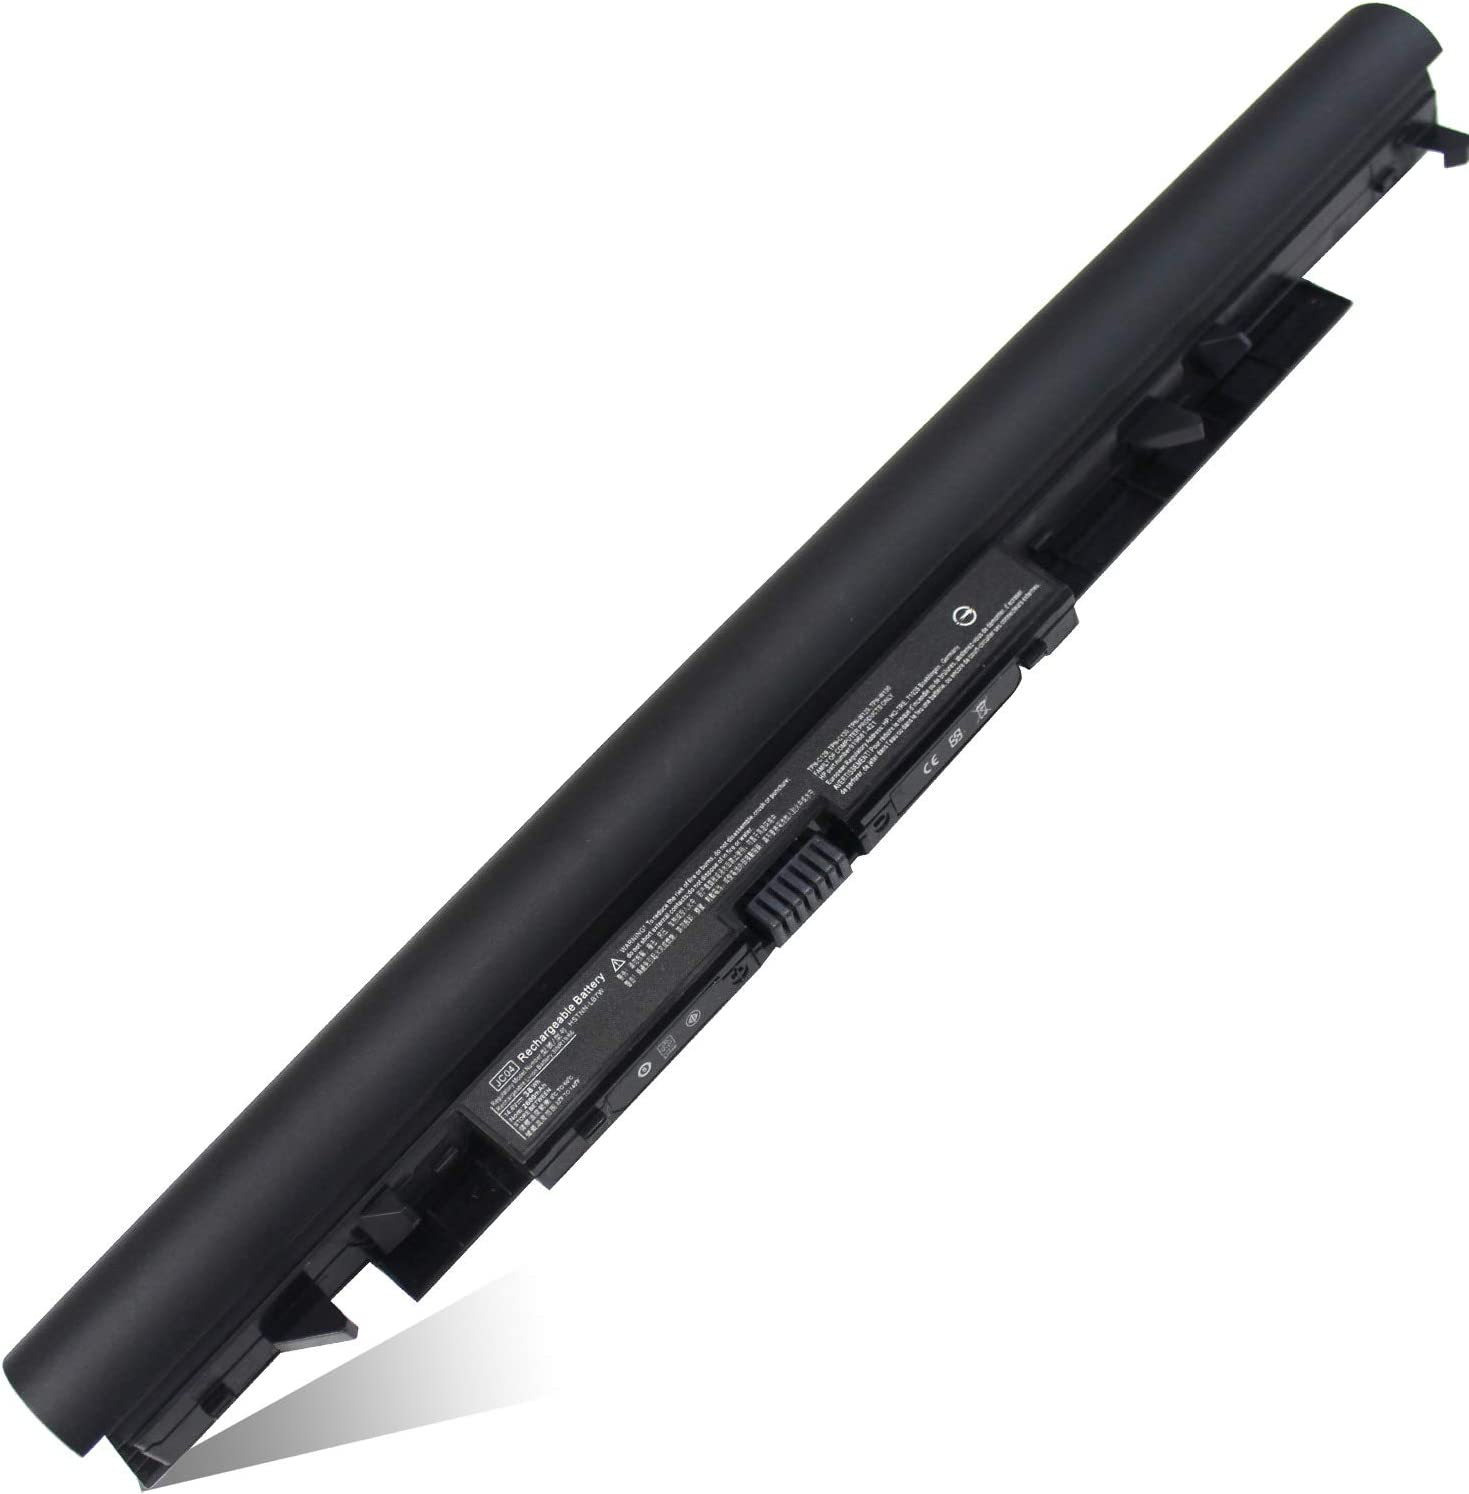 Easy&Fine JC03 JC04 Laptop Battery for HP 919700-850 919701-850 919681-421 HSTNN-DB8E HSTNN-H7BX HSTNN-L67N HSTNN-PB6Y